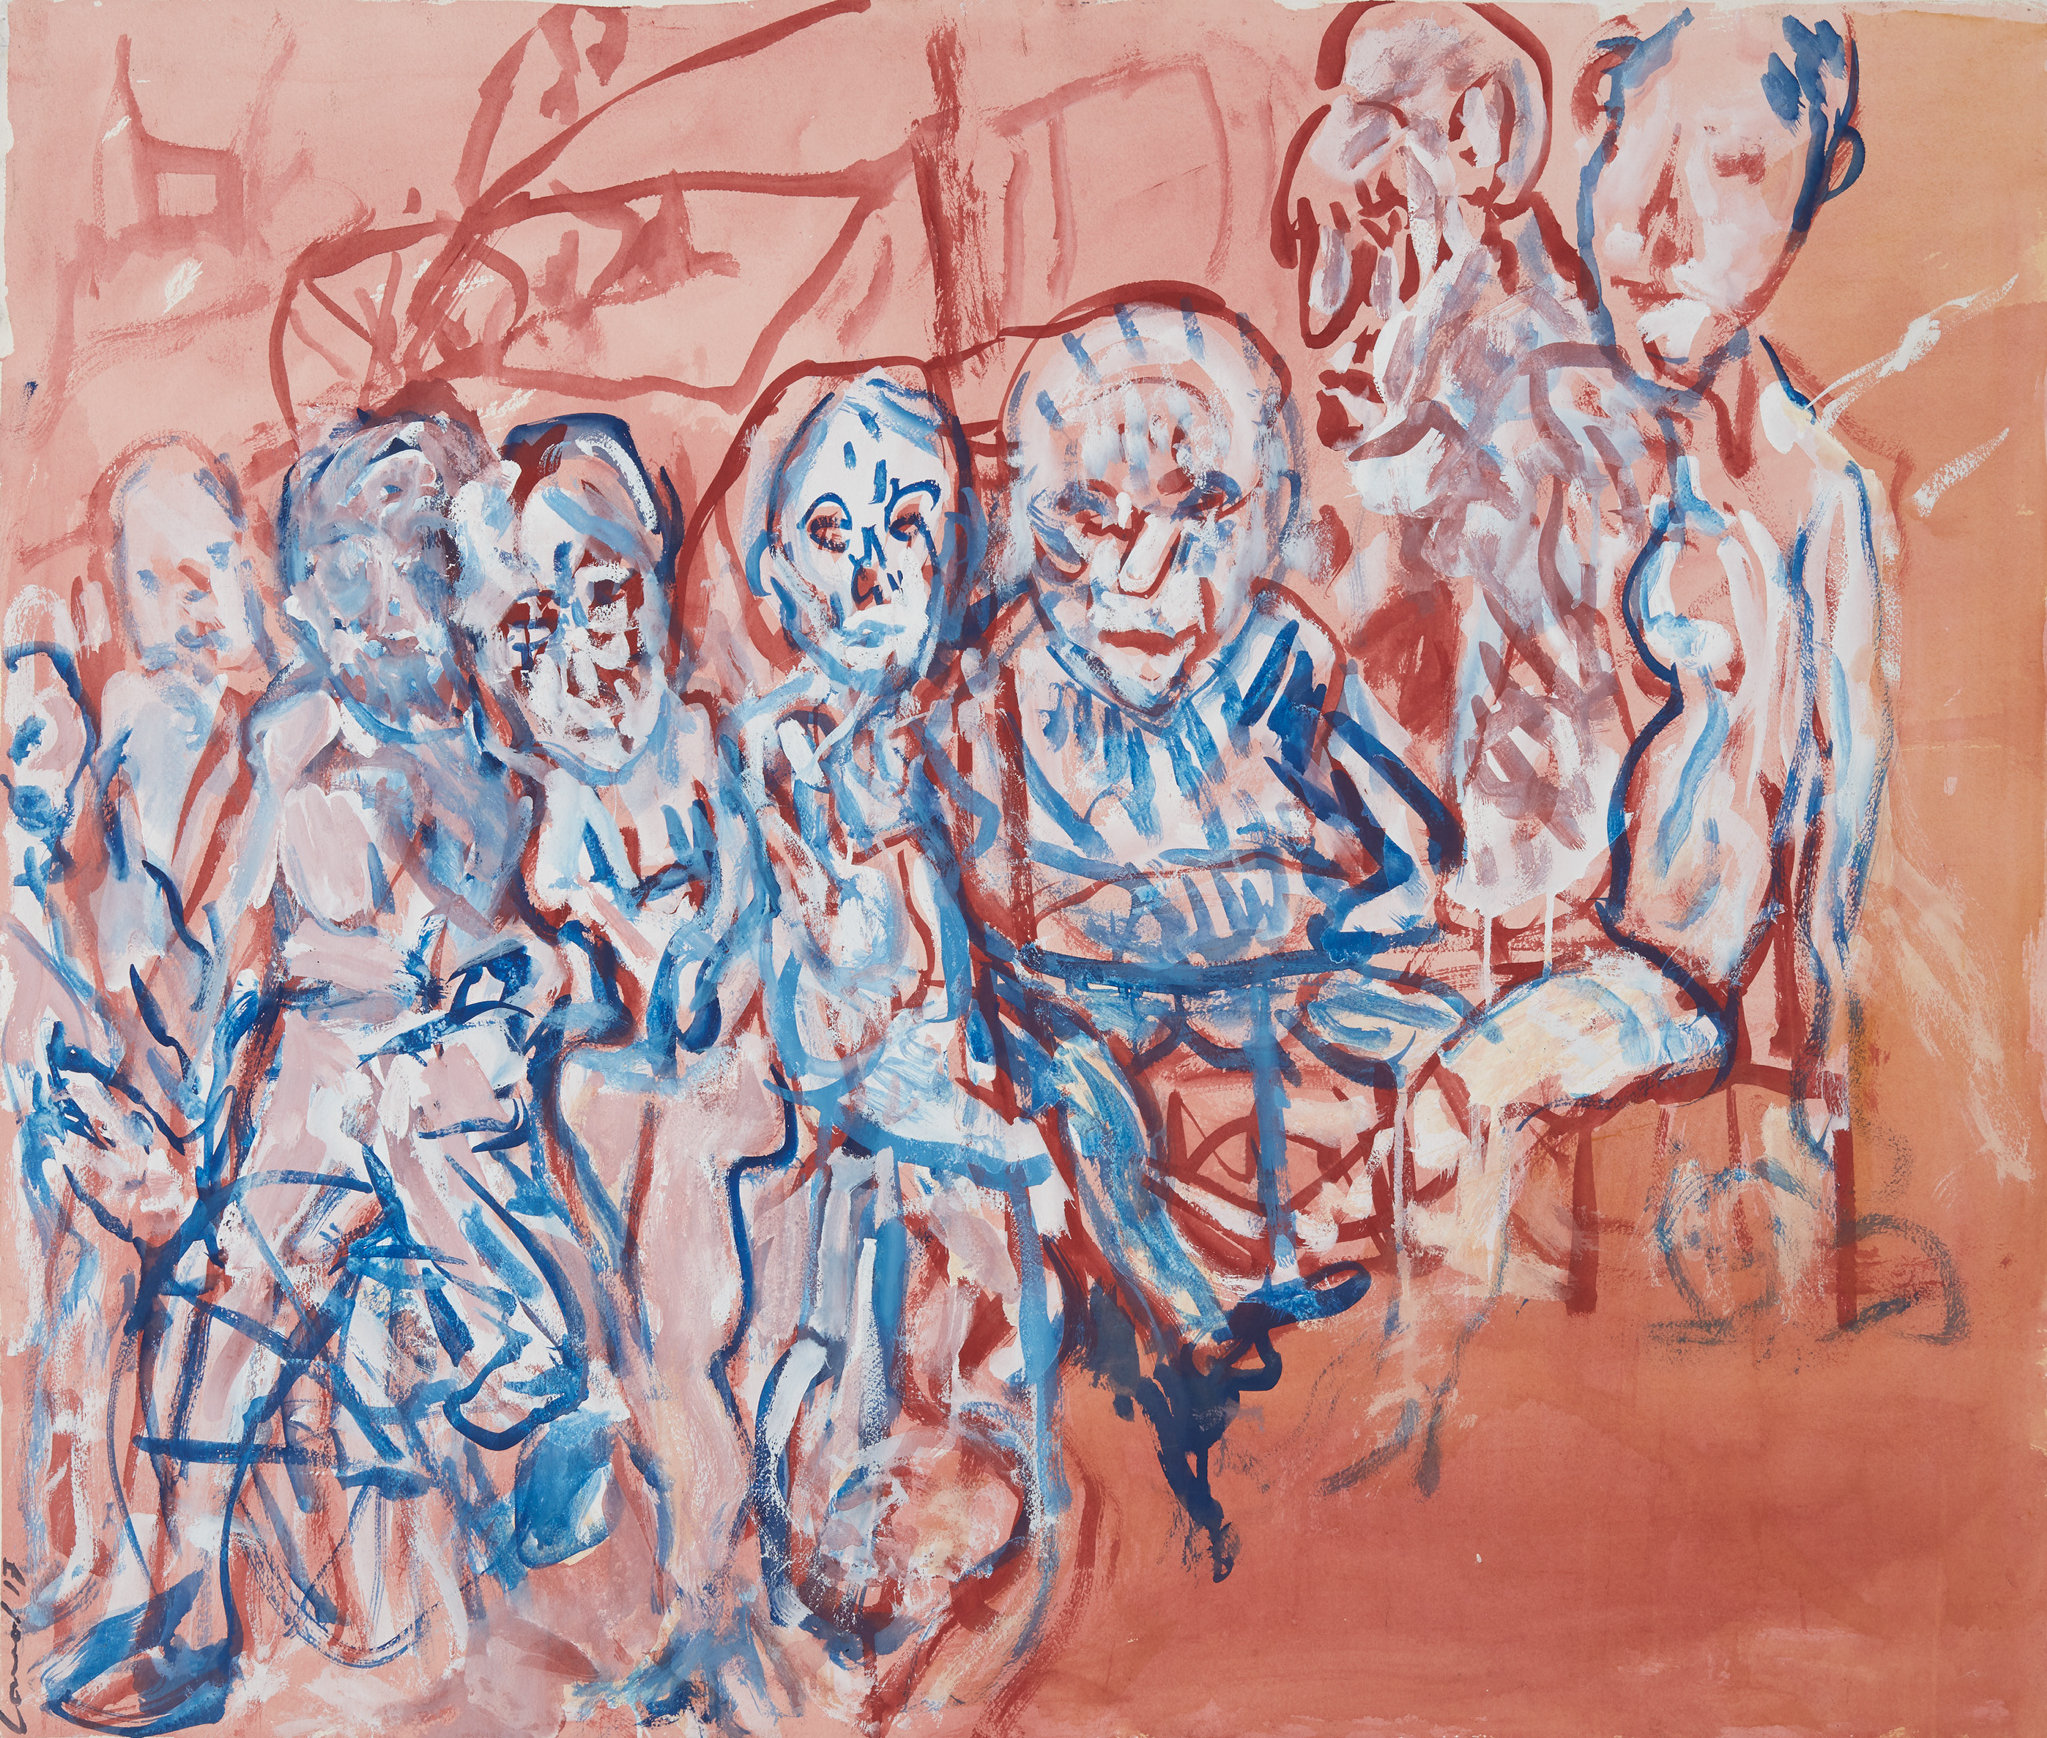 KEVIN CONNOR  Cafe People , 2017 gouache on 300gsm cotton paper 85 x 100 cm